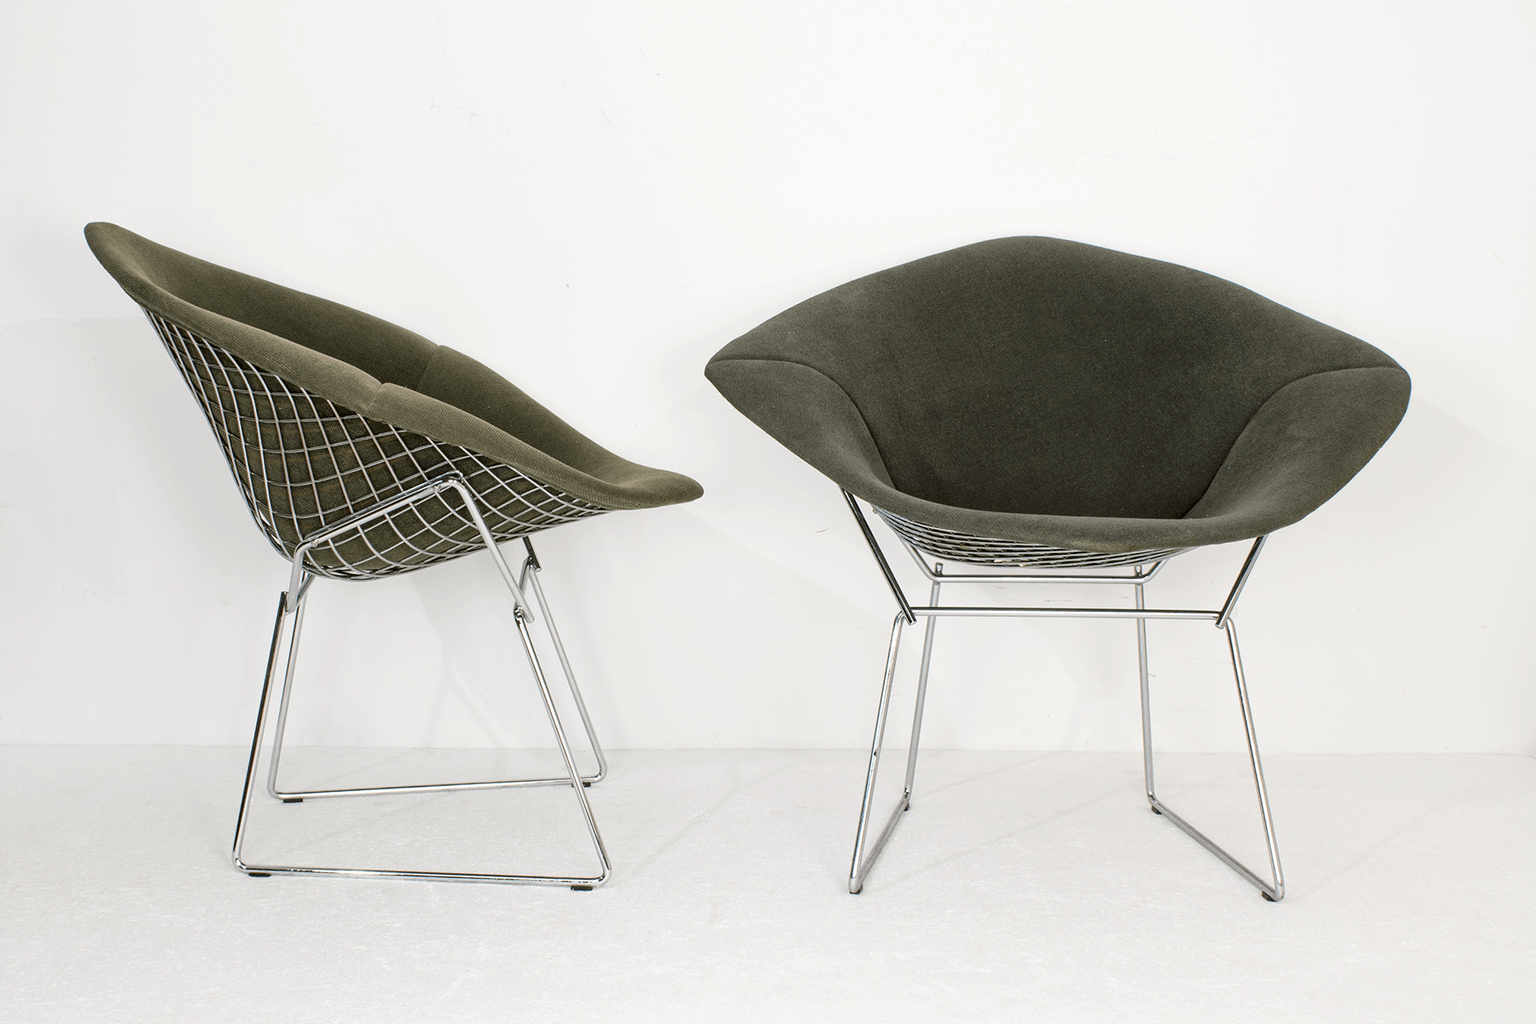 chair covers price up bowery nyc bertoia diamond chairs for knoll